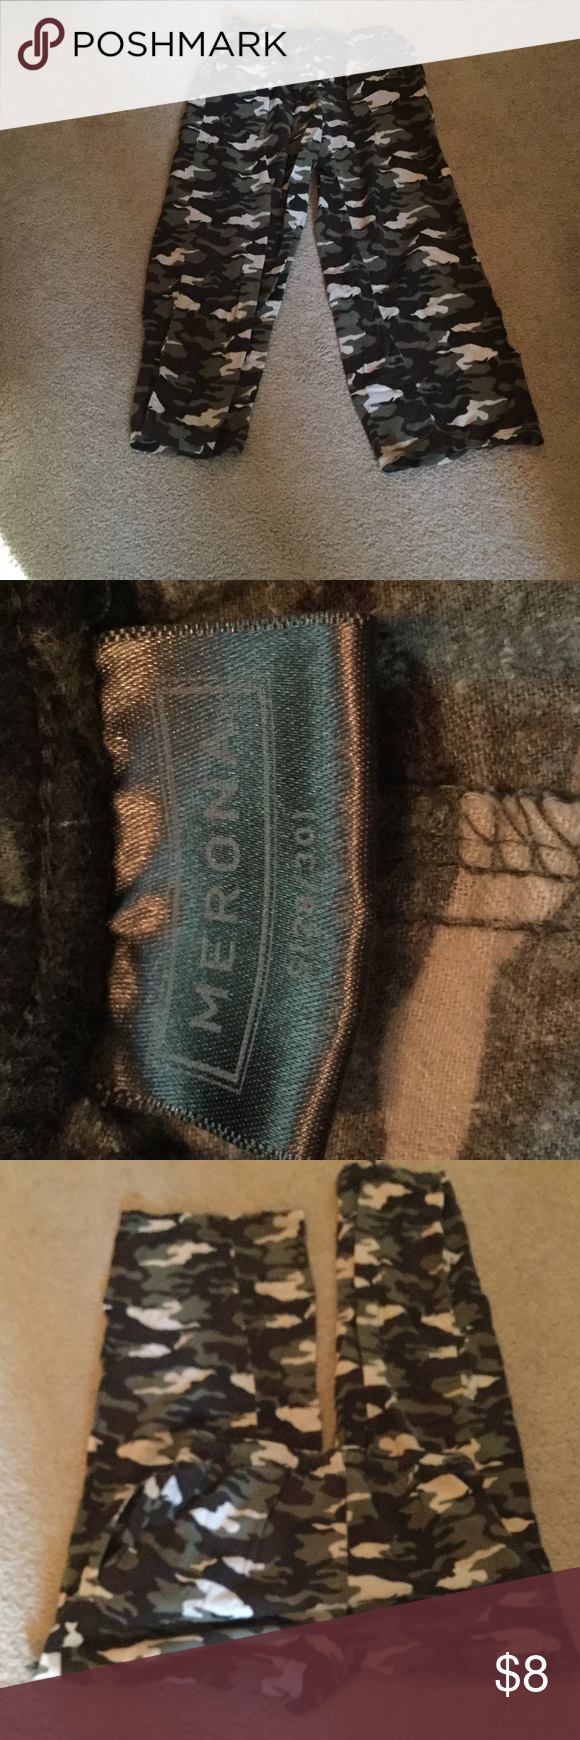 Merona Men's Sleep Pants Camo size 28/30 flannel sleep pants.  100% cotton.  Elastic waist with drawstring.  Good condition. Merona Pants